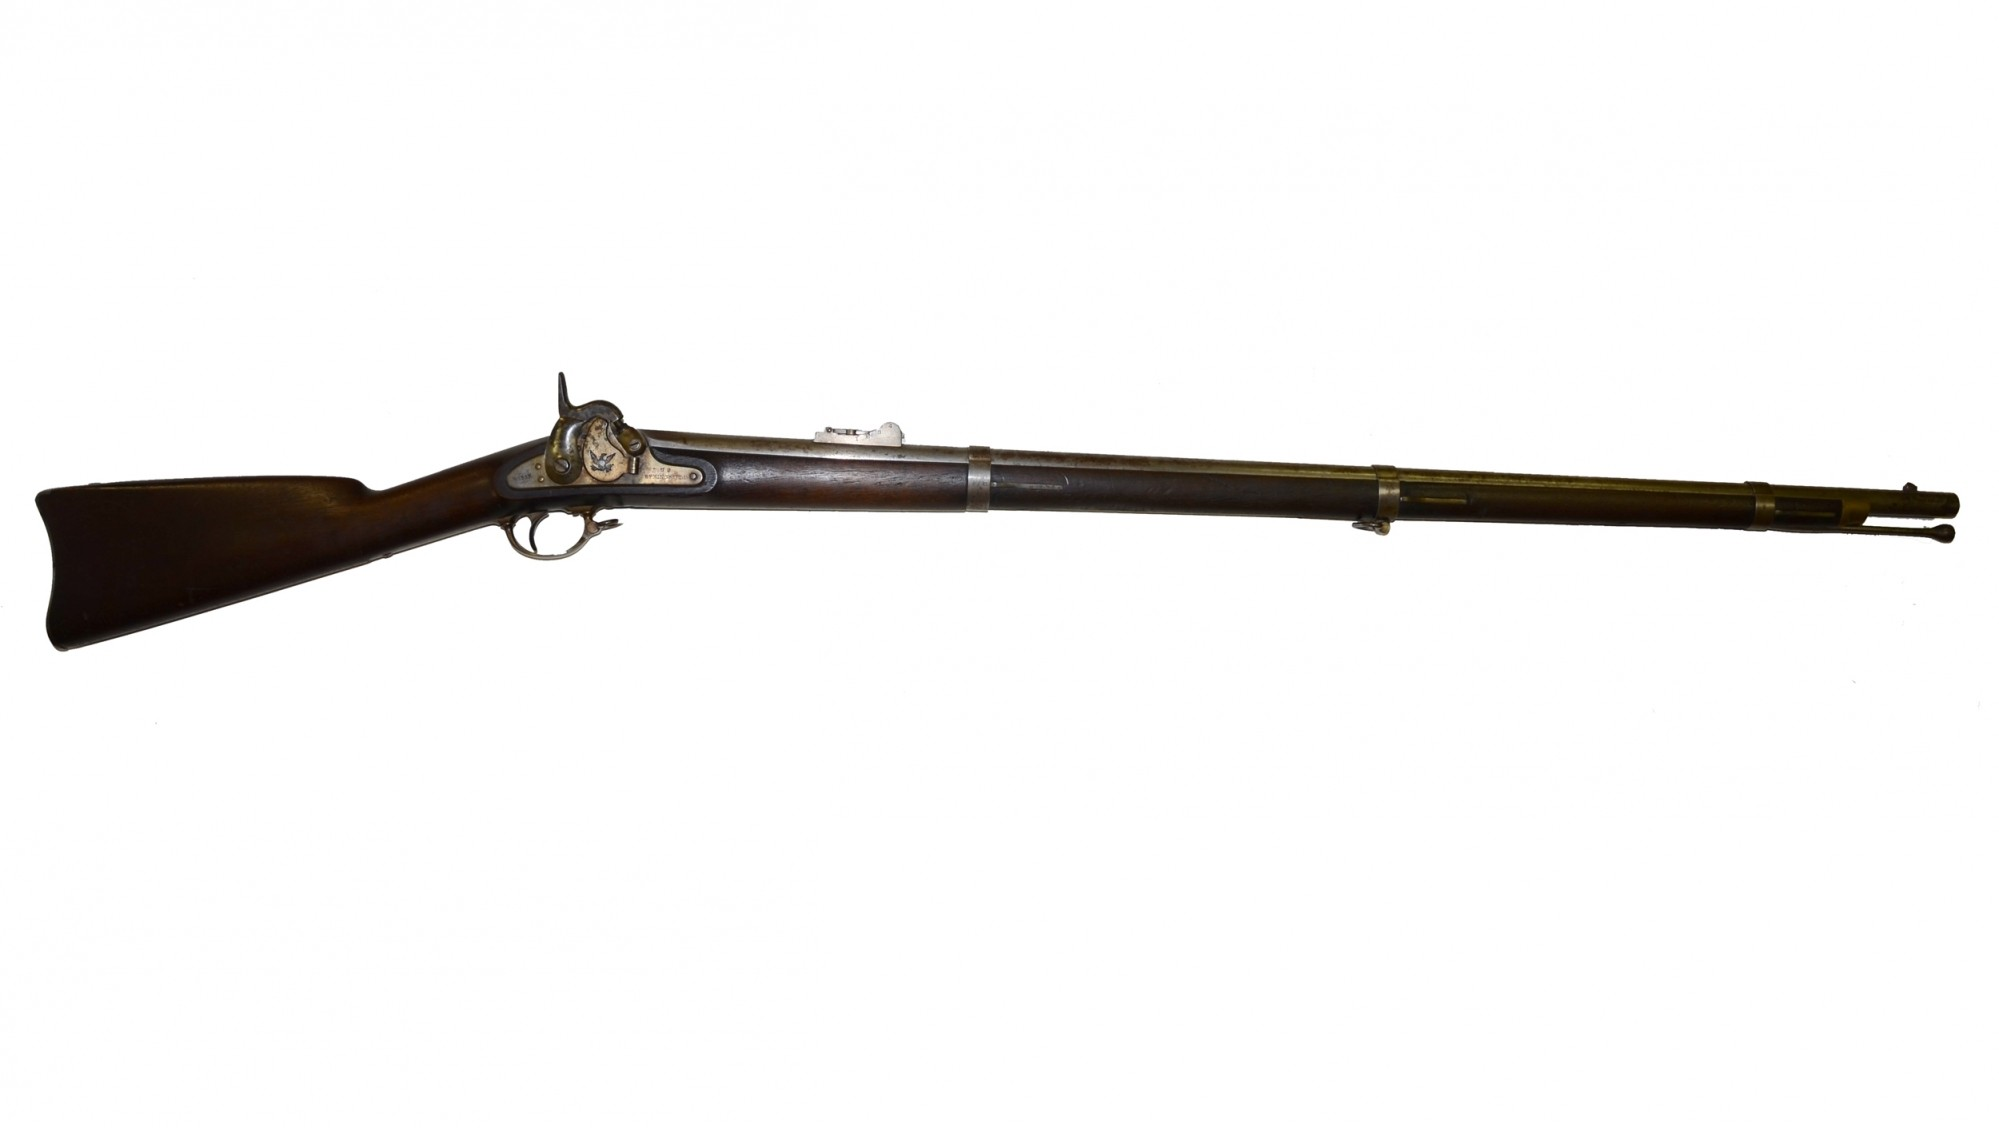 VERY FINE, SPRINGFIELD M1855 PERCUSSION RIFLE-MUSKET, DATED 1857